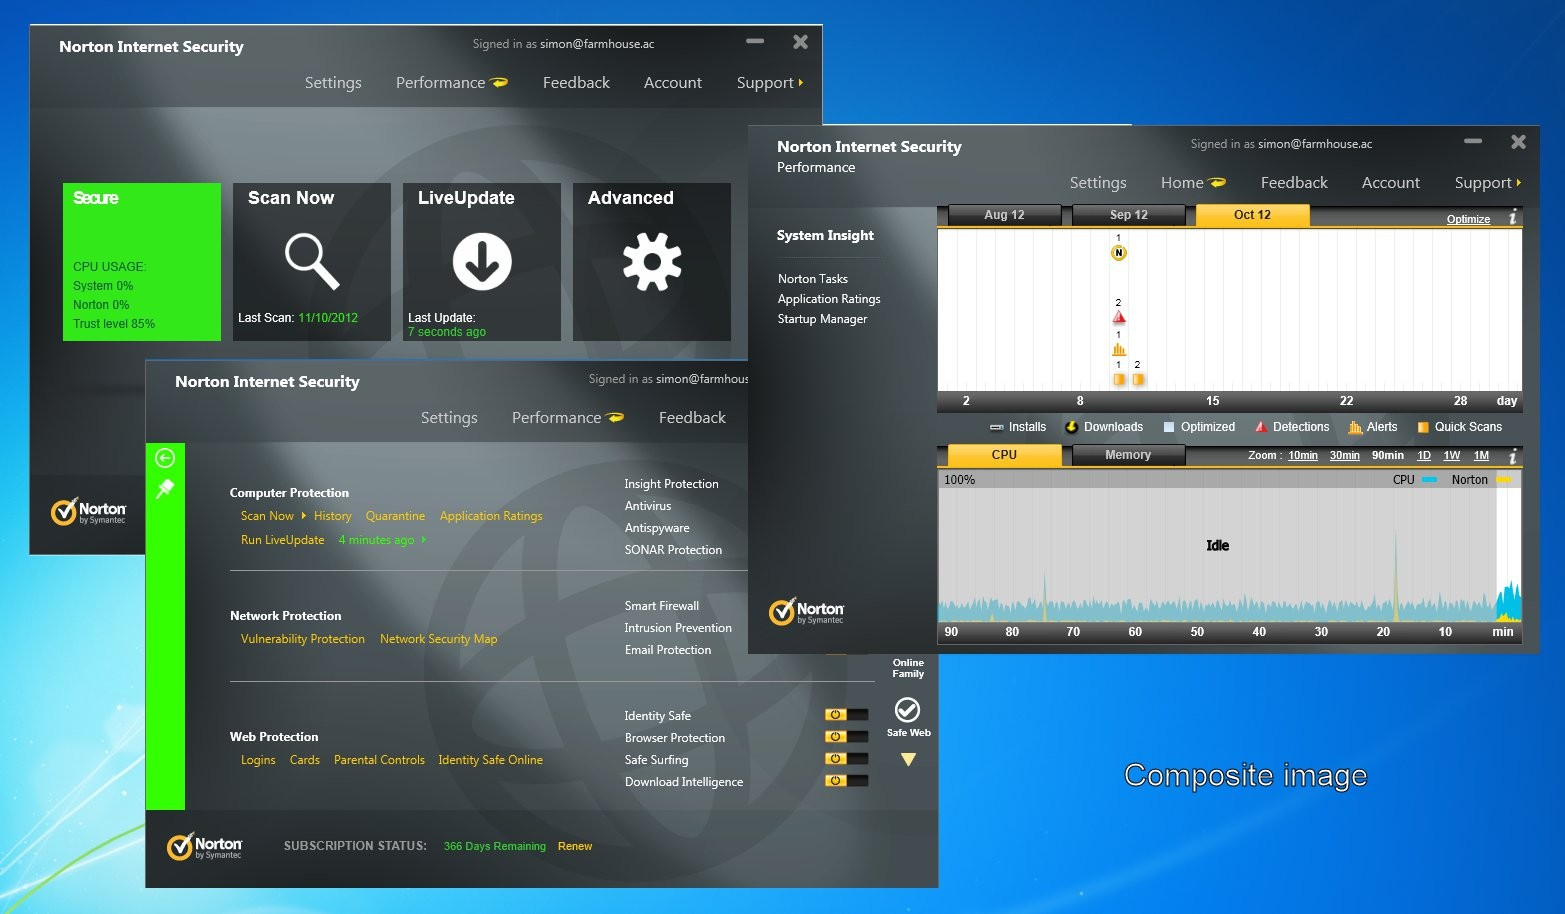 Norton Internet Security 2014 Interface